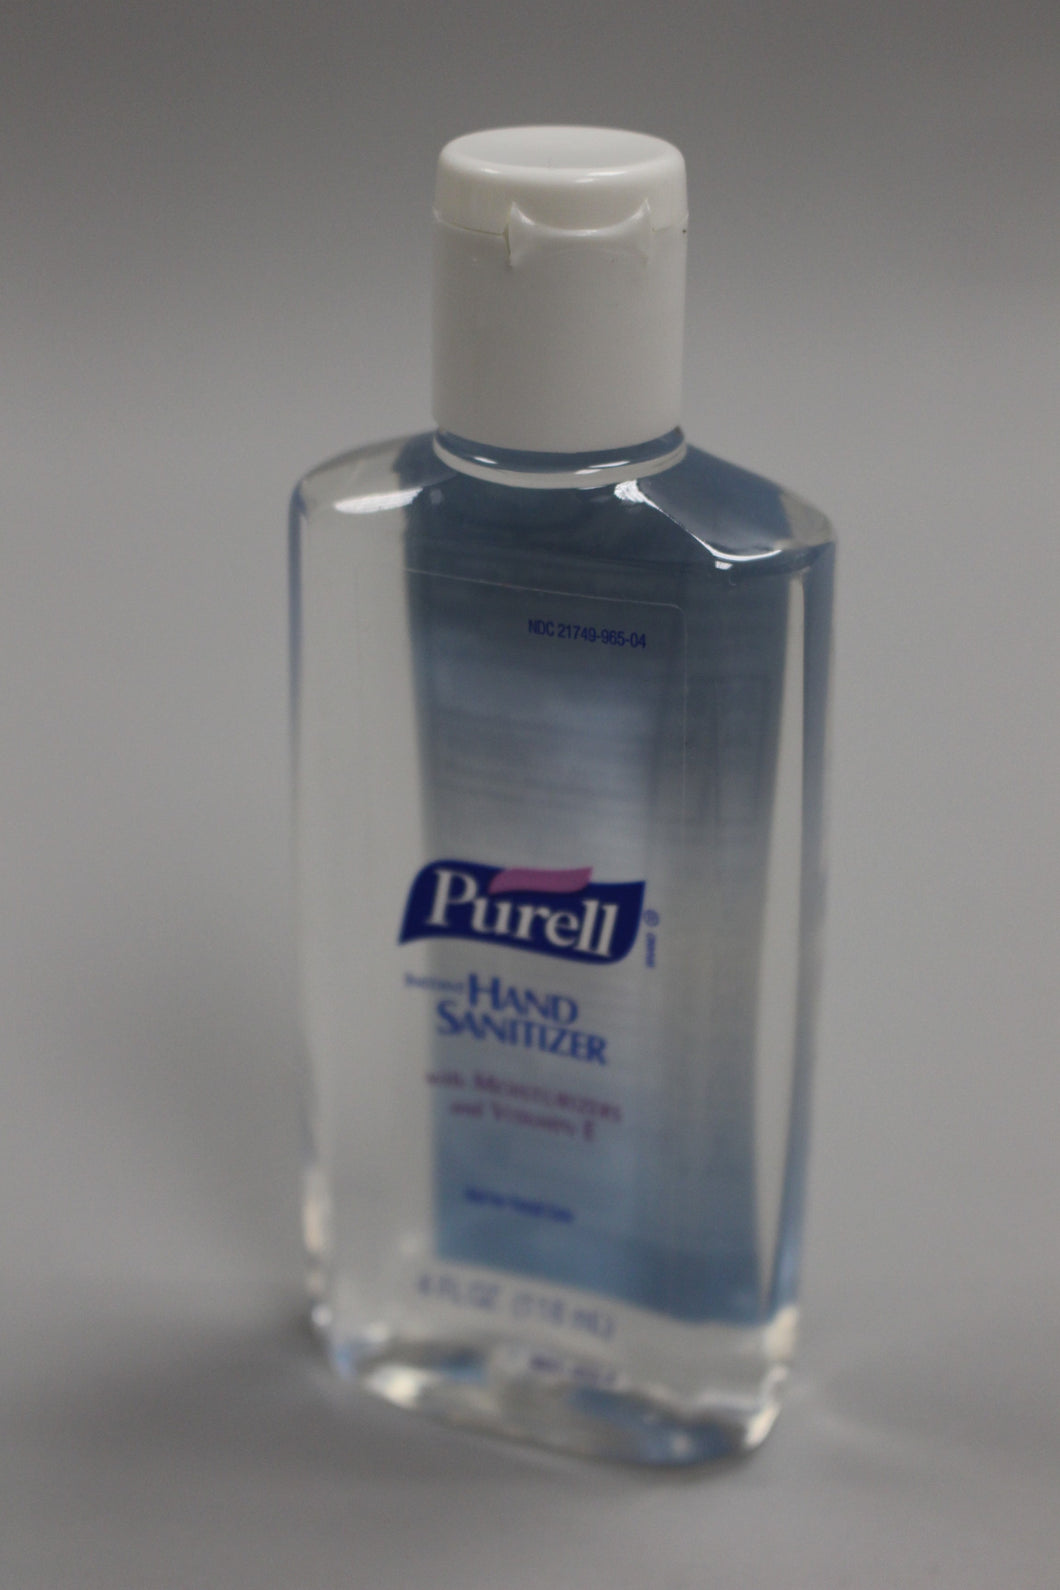 Purell Instant Hand Sanitizer - 4 Fl Oz - With Moisturizers & Vitamin E - New